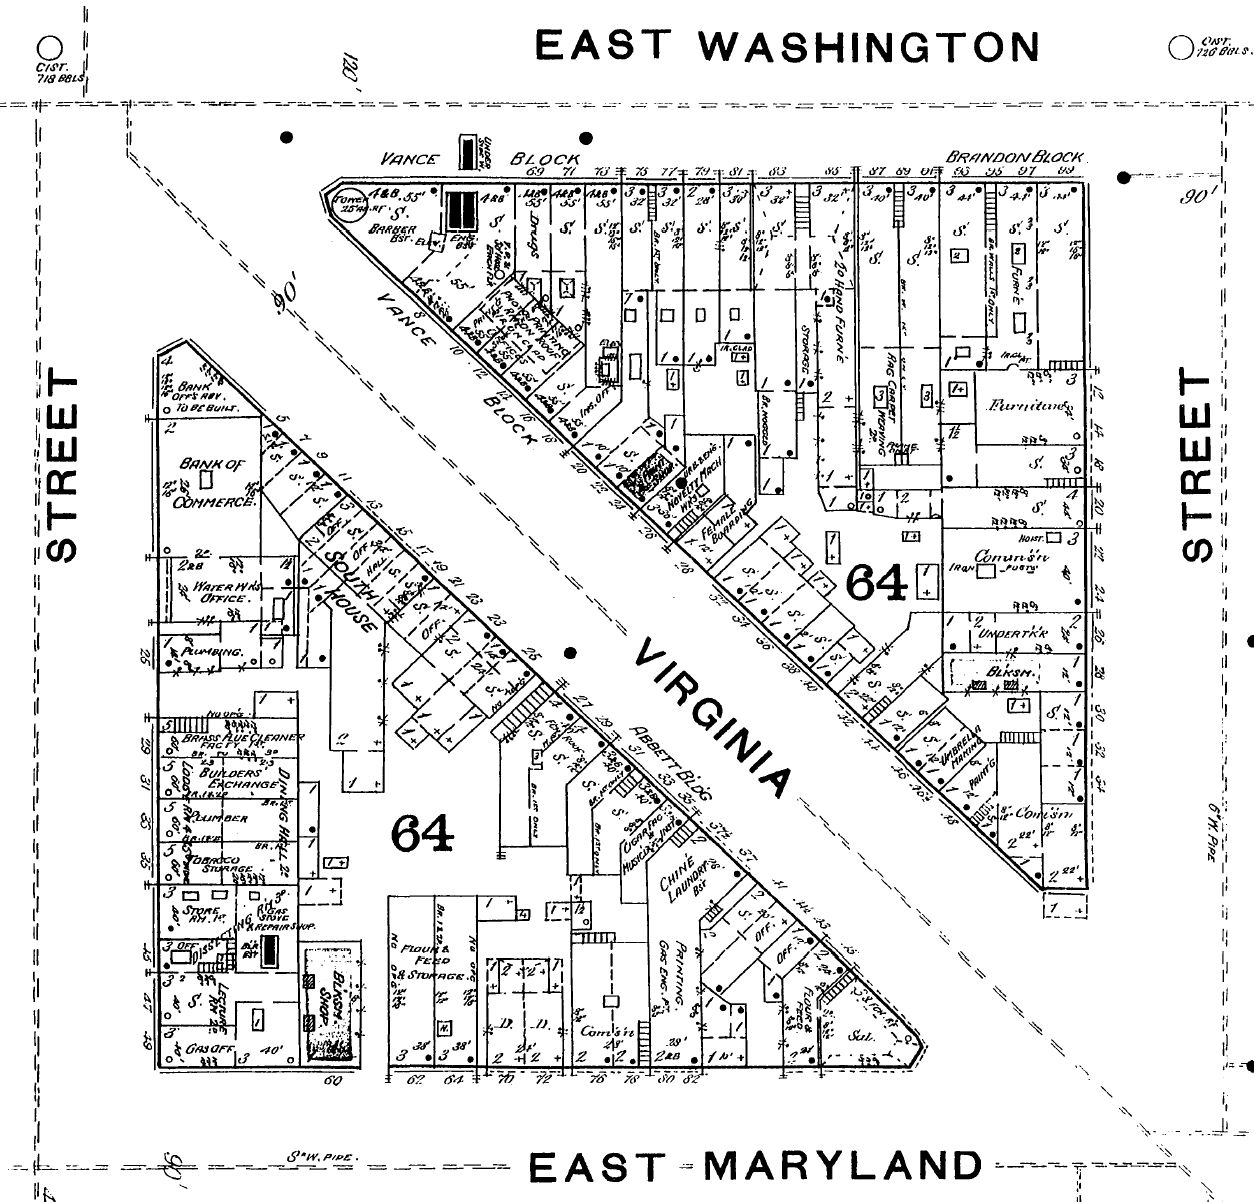 South House, 1887 Sanborn map